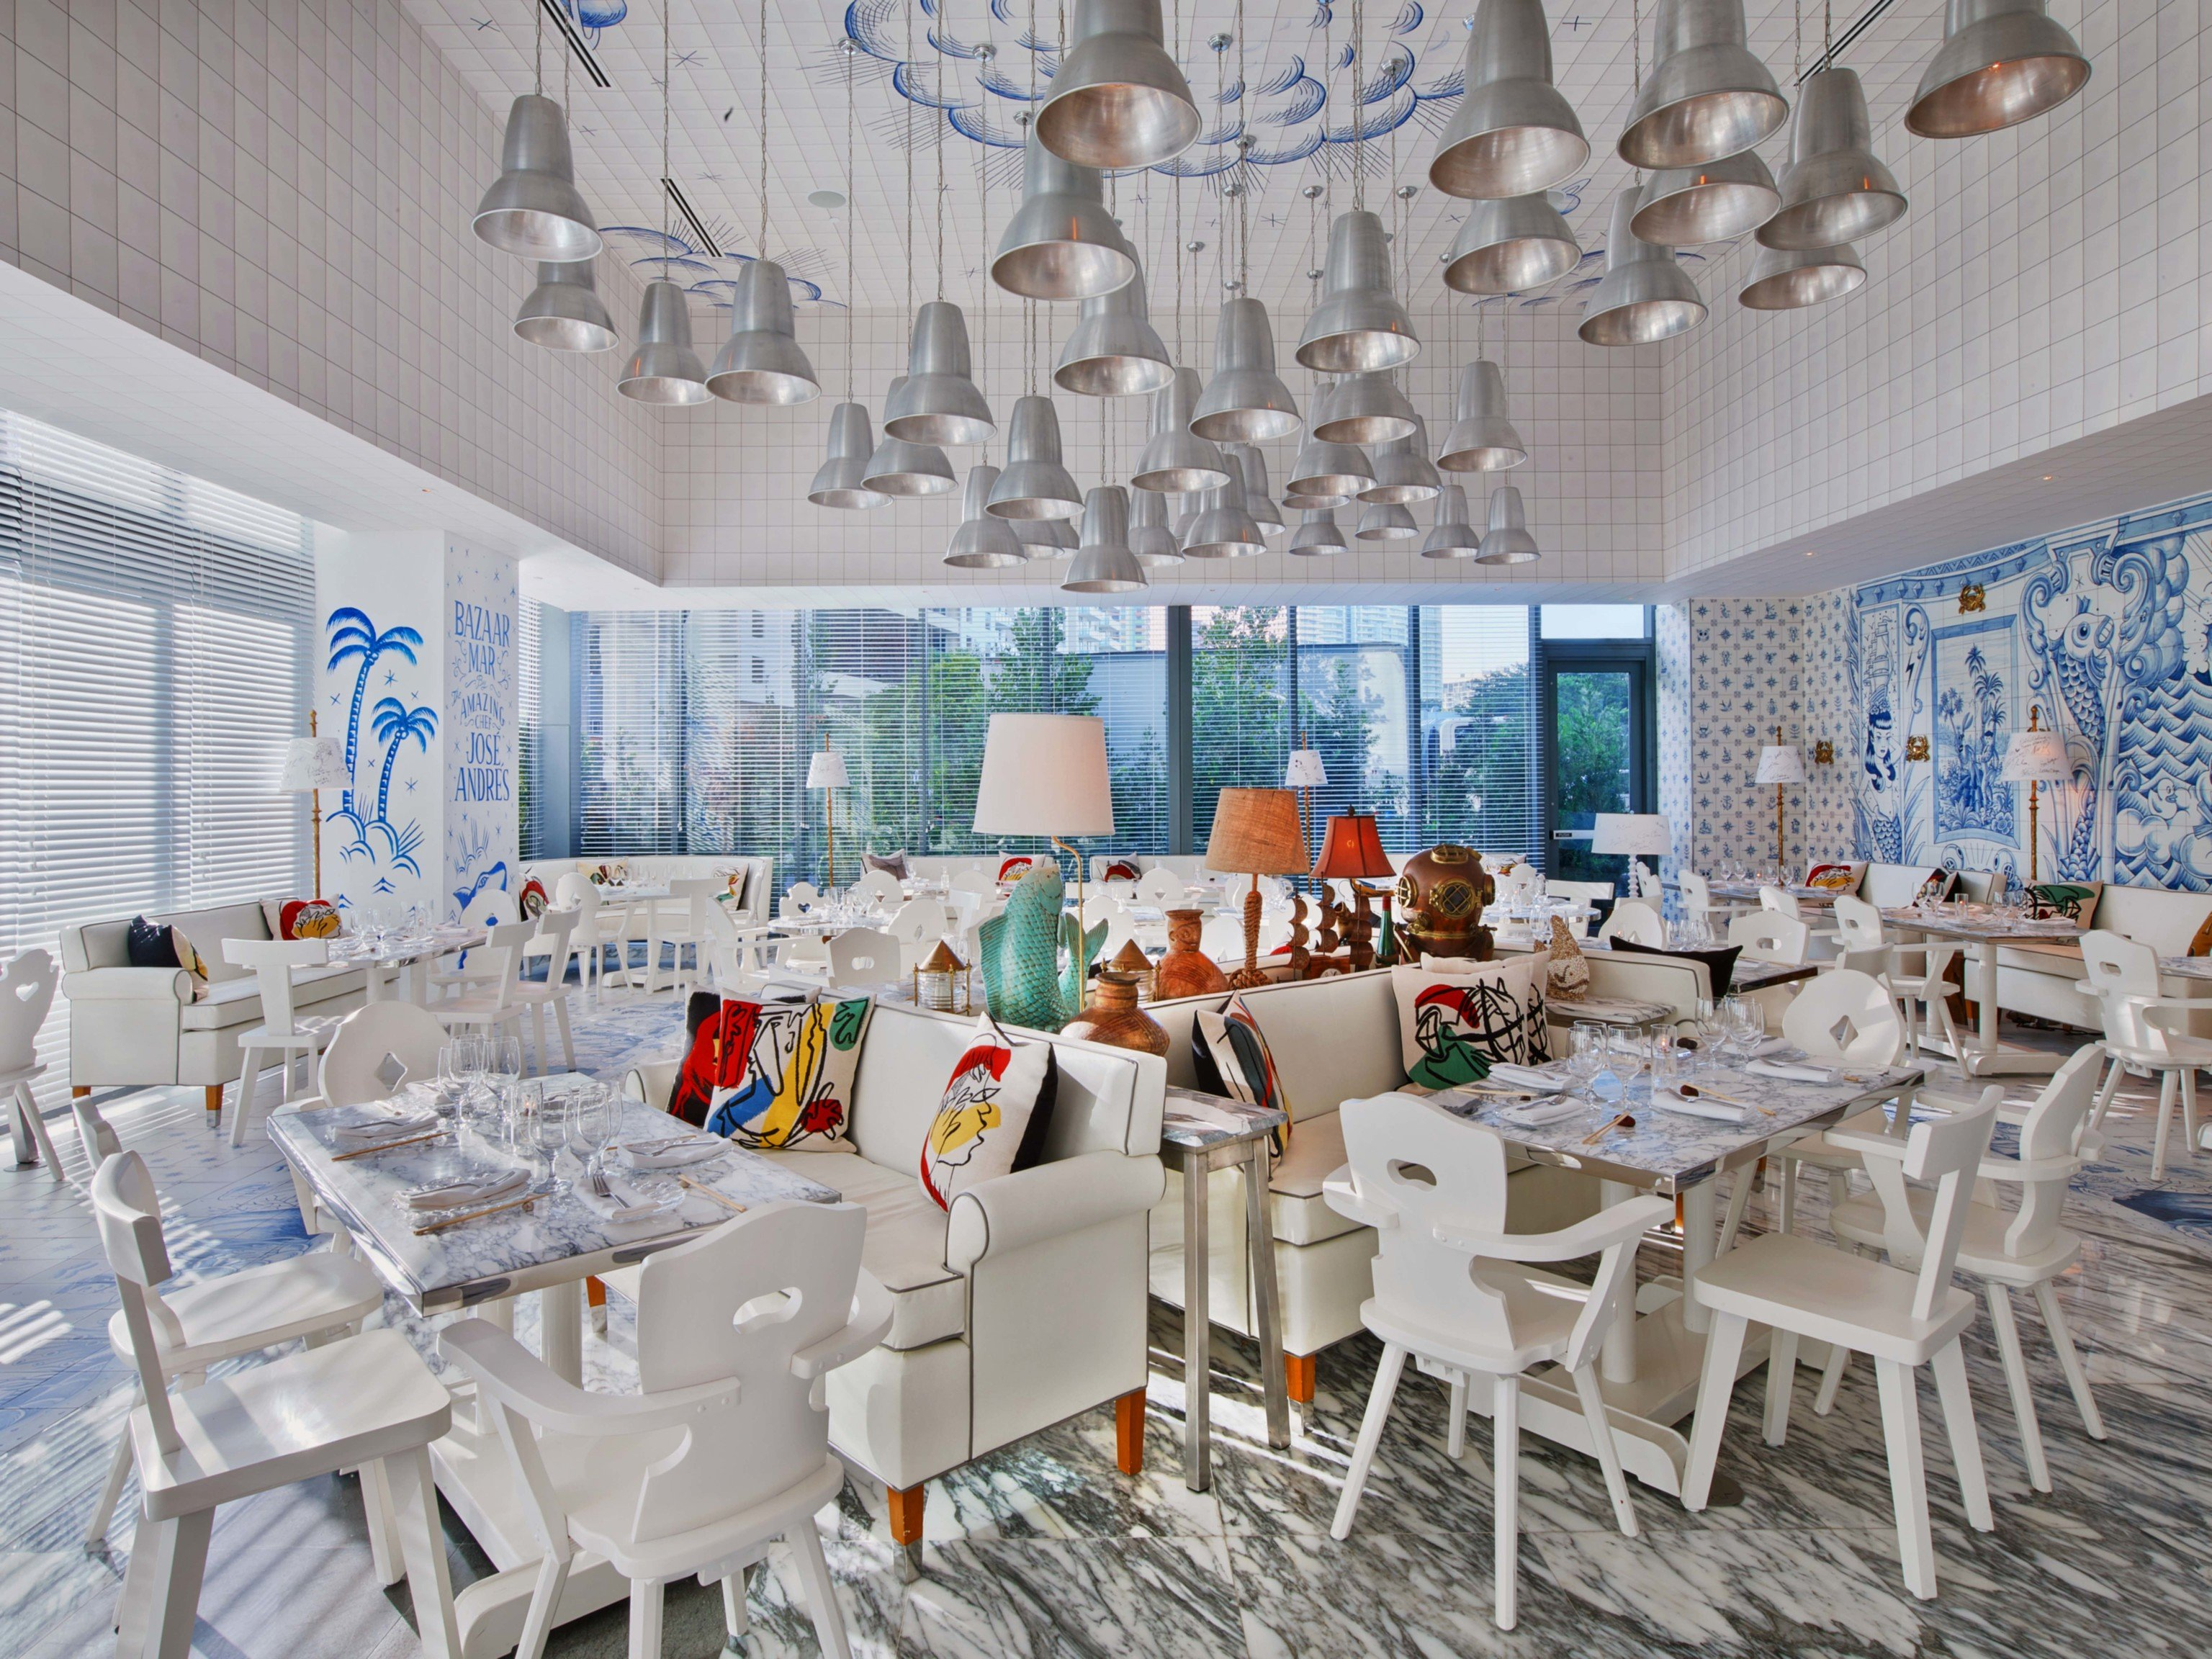 Hotels Trip Ideas wall indoor room dining room function hall restaurant meal interior design banquet Party estate Design ballroom table dining table worktable